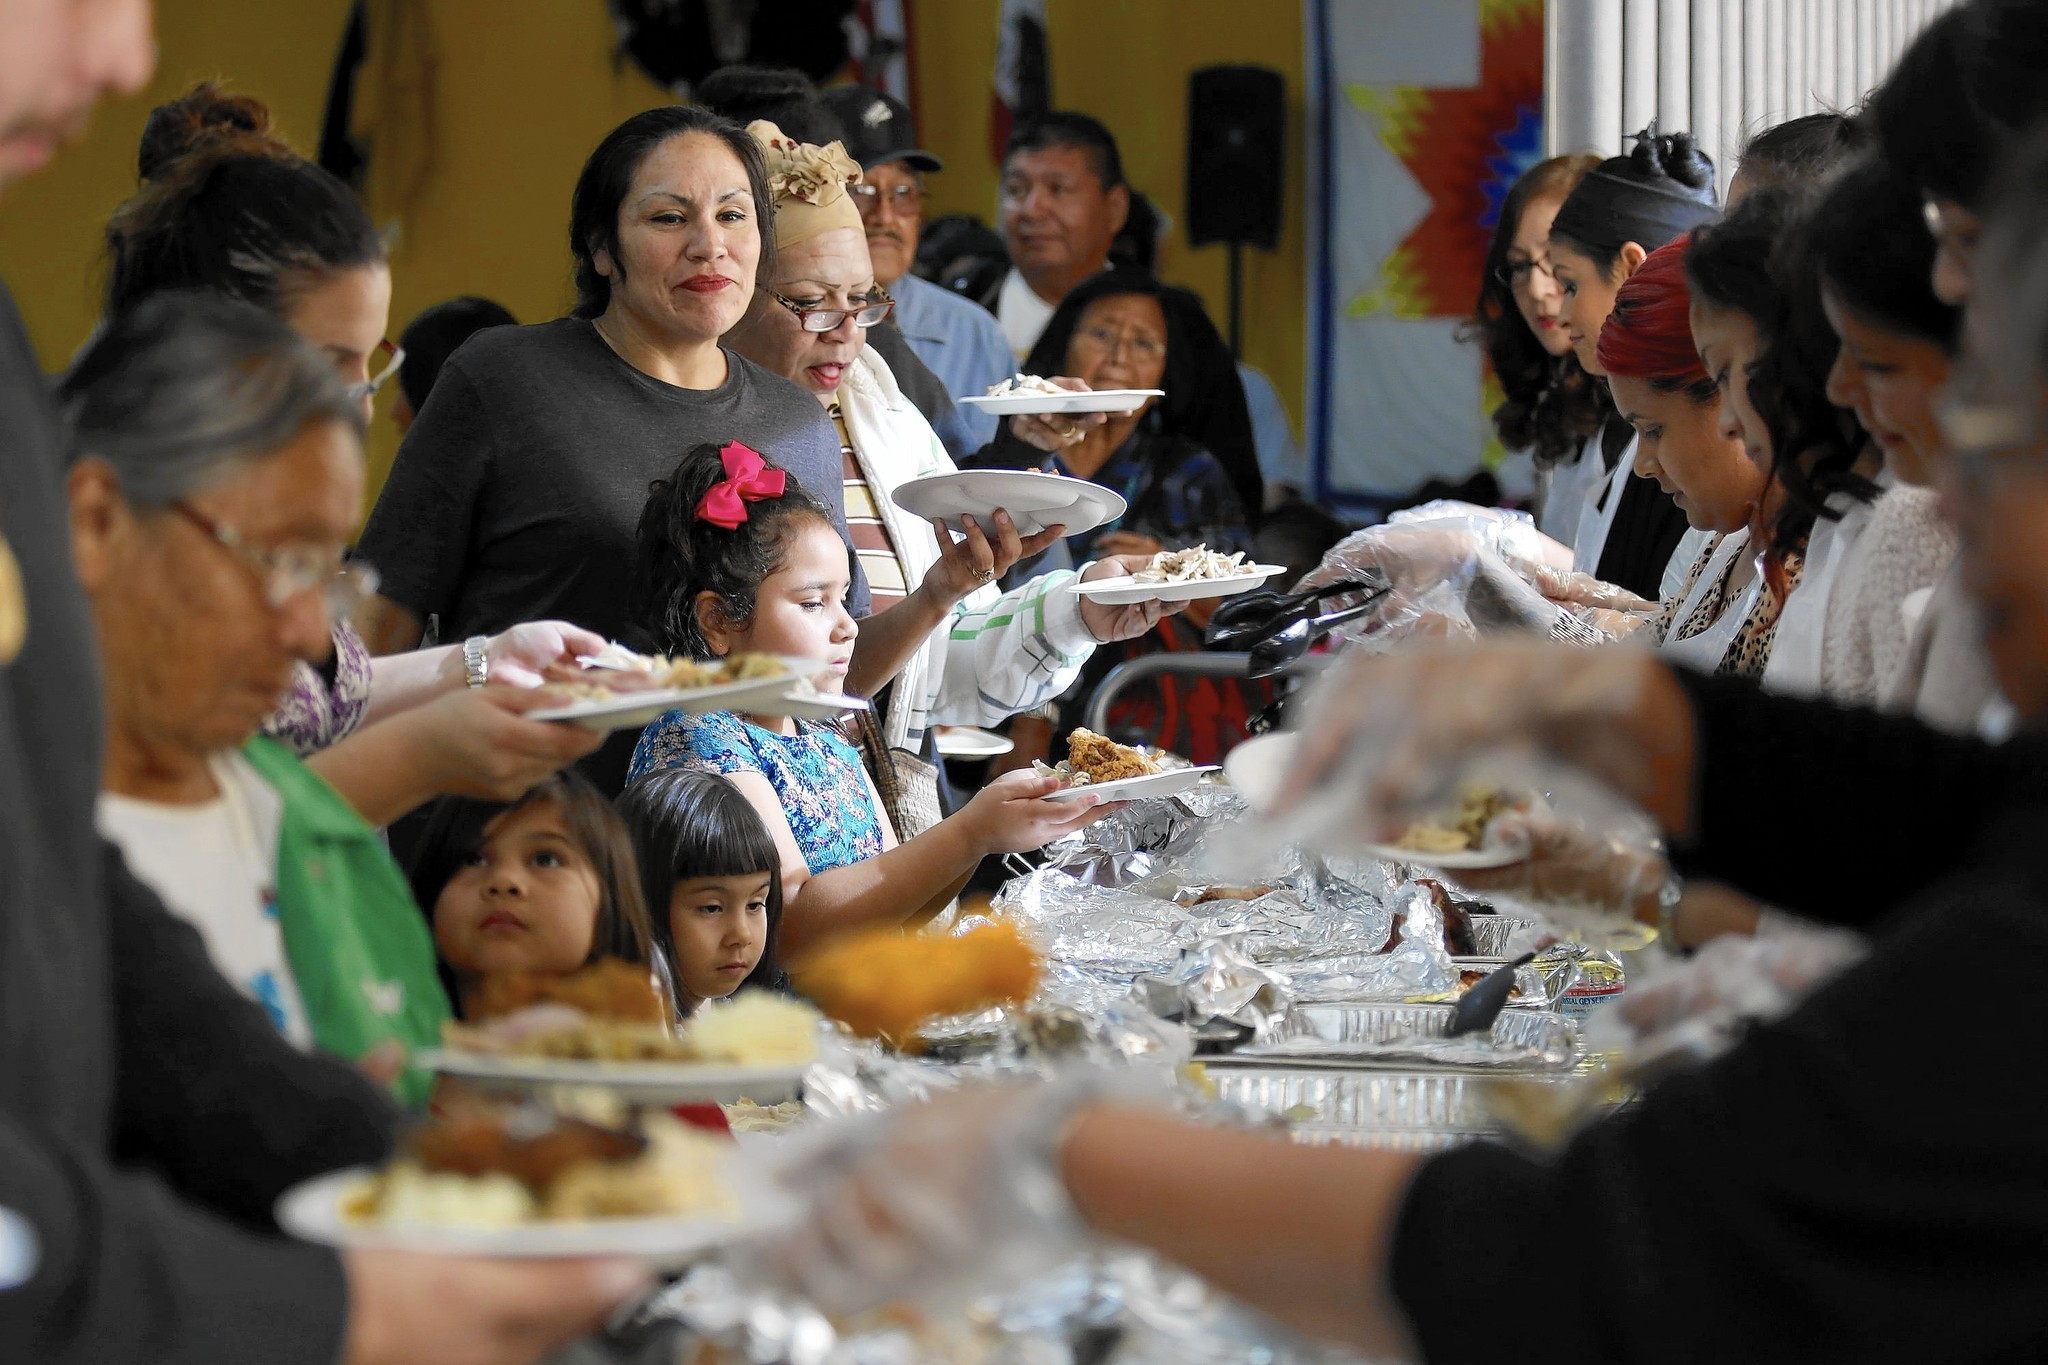 Native Americans mark Thanksgiving with mixed feelings, and a meal for those in need